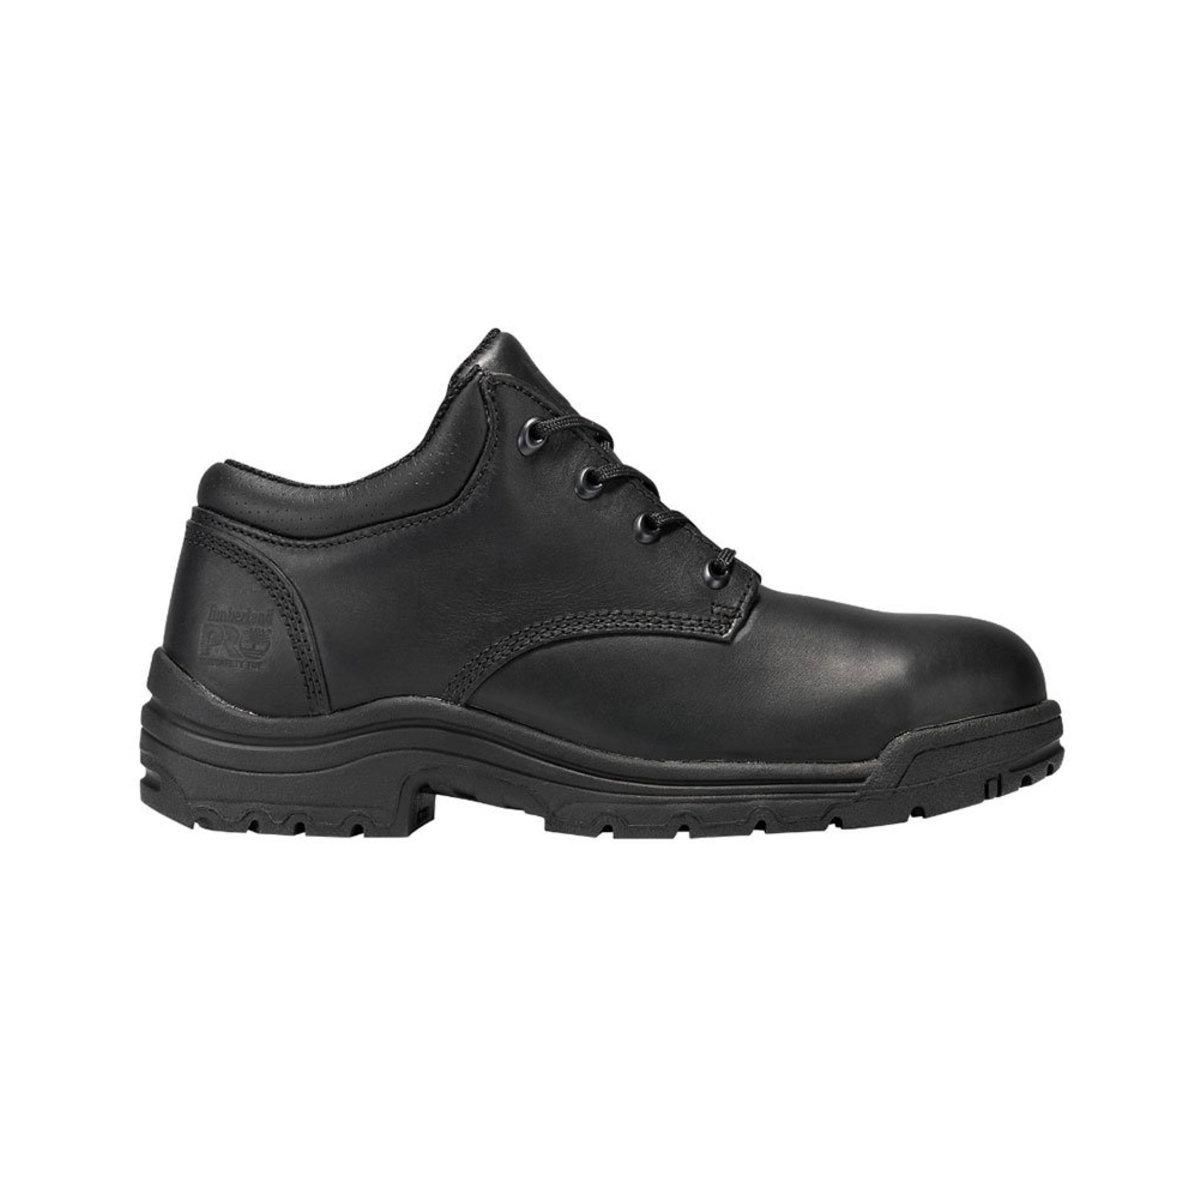 ad4d85cac85 Lyst - Timberland Pro Titan Eh Alloy Toe Oxford Work Shoes – Mens in ...